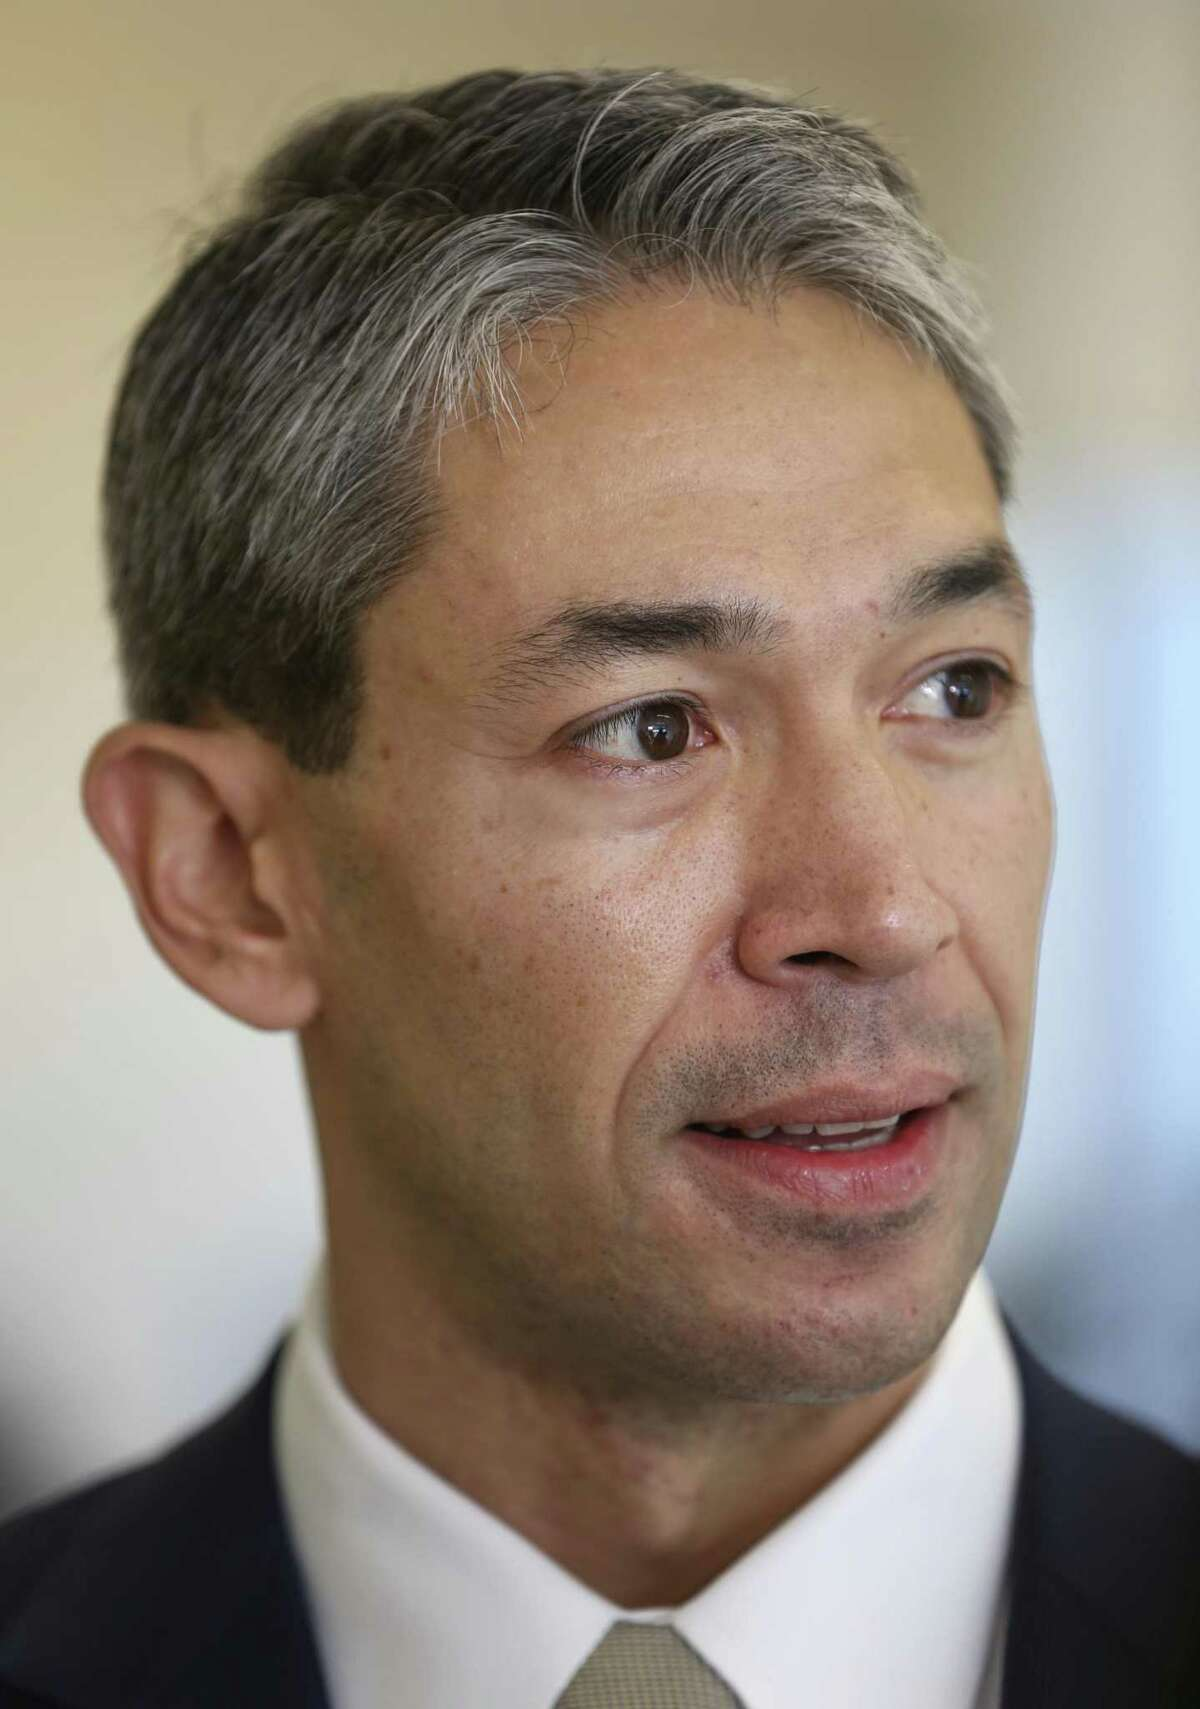 Mayor Ron Nirenberg: Power of love, fight for justice has long history in S.A.